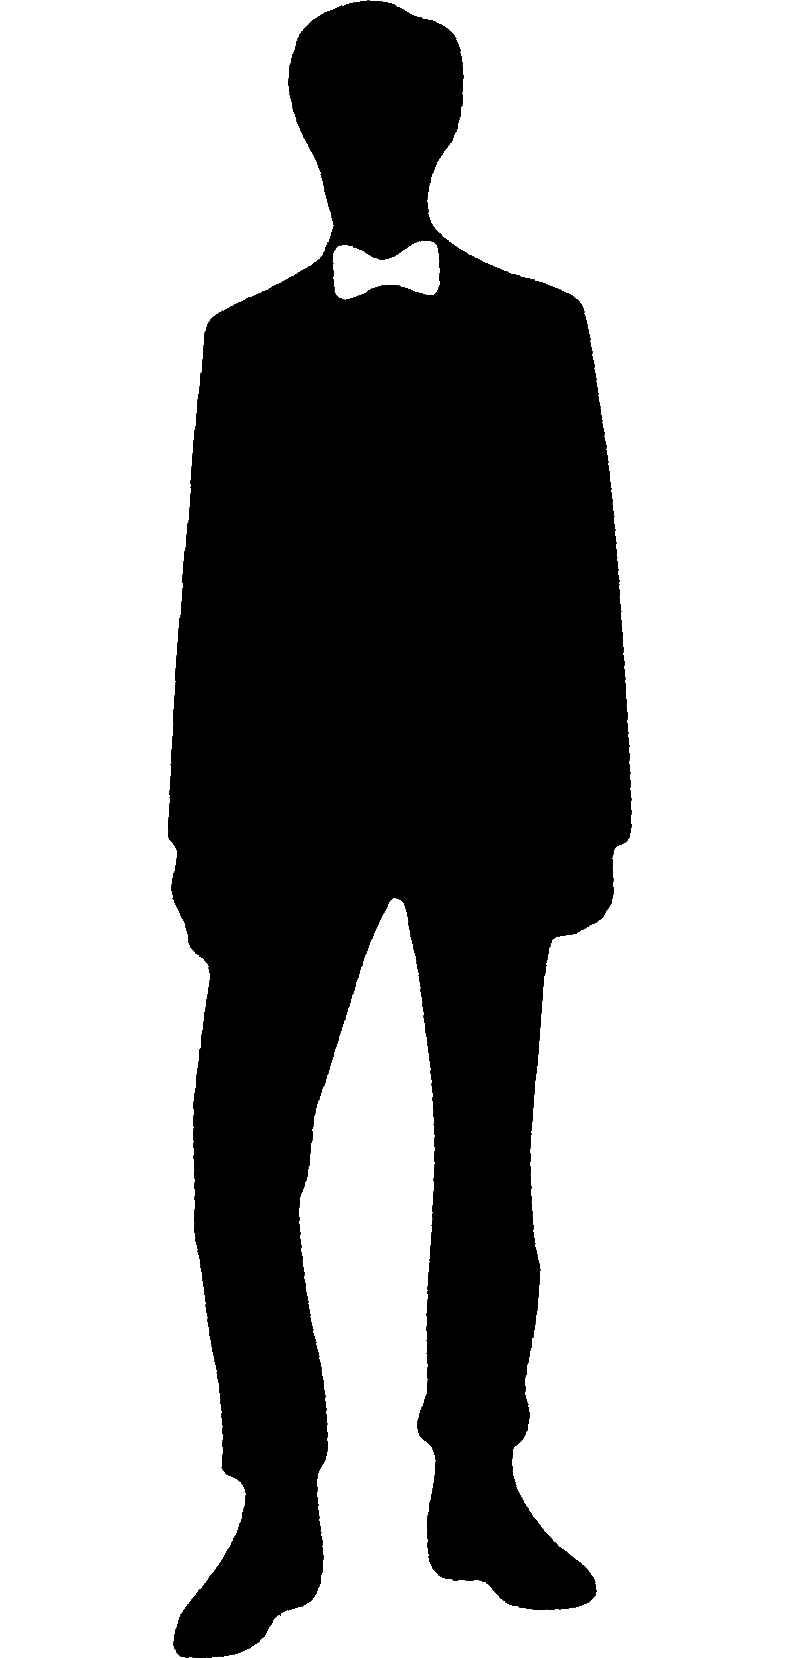 800x1658 11th Doctor Who Bow Tie Silhouette.jpg Crafting